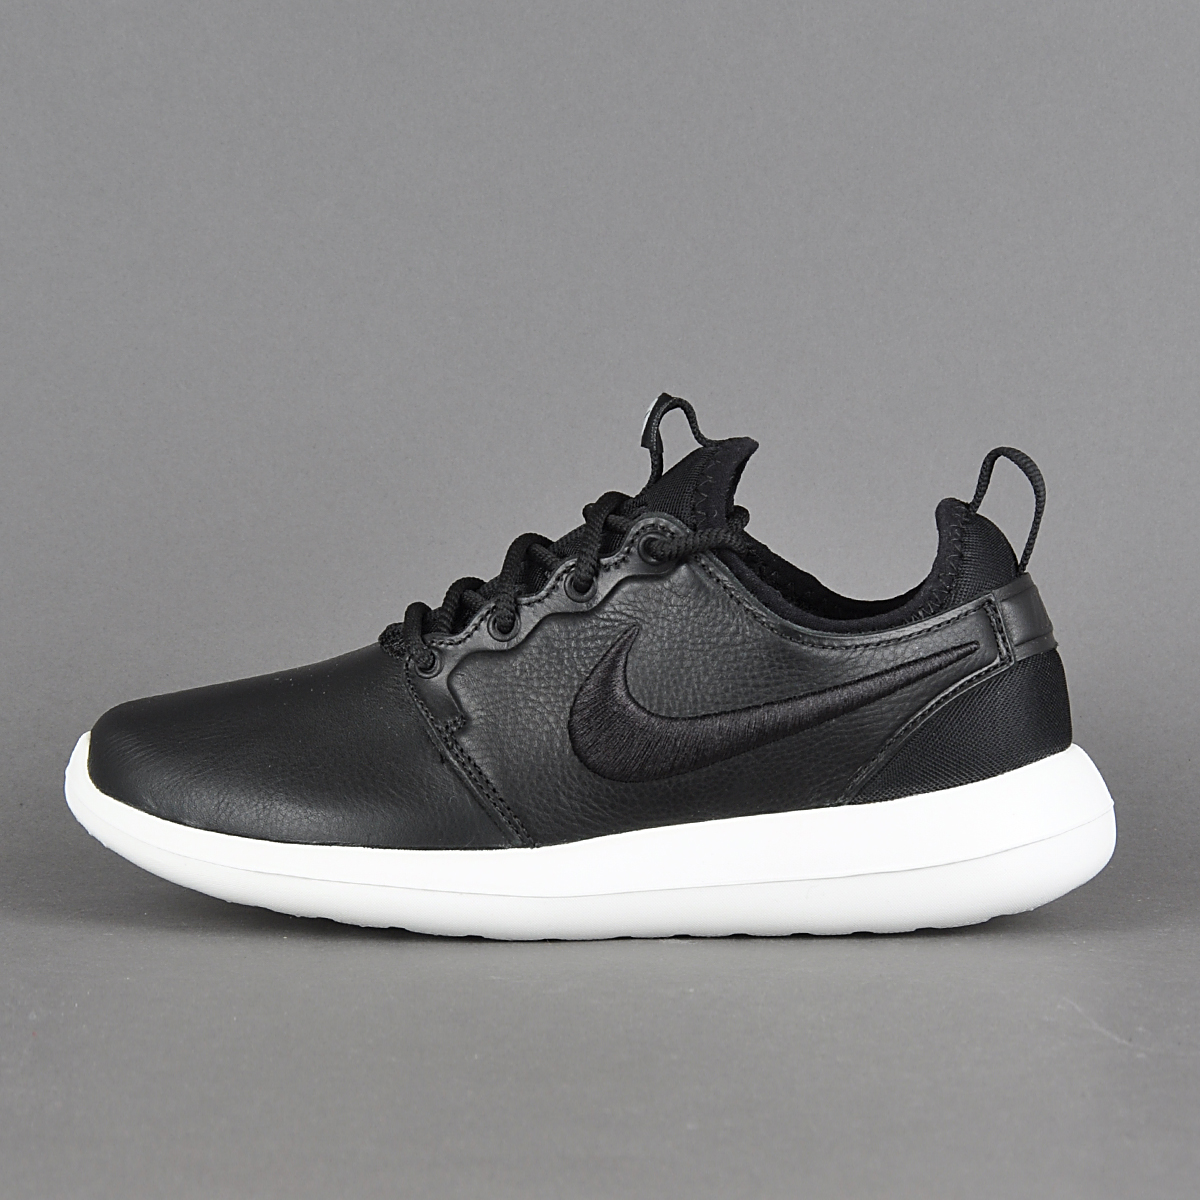 Nike Roshe Two Leather Premium (bordeaux / white) Buy online